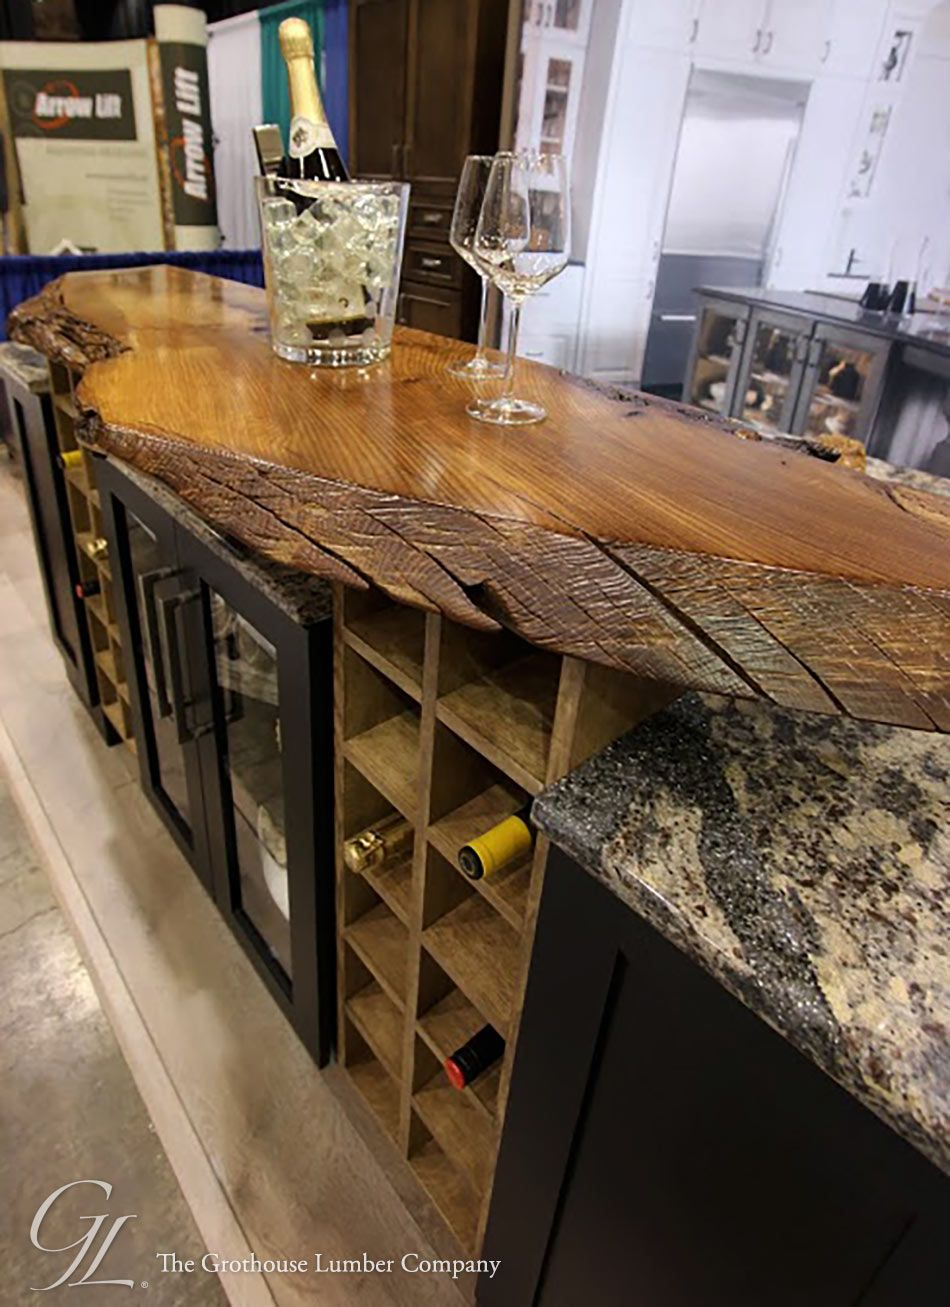 Find This Pin And More On Live Edge Wood Countertops By Woodcountertops.